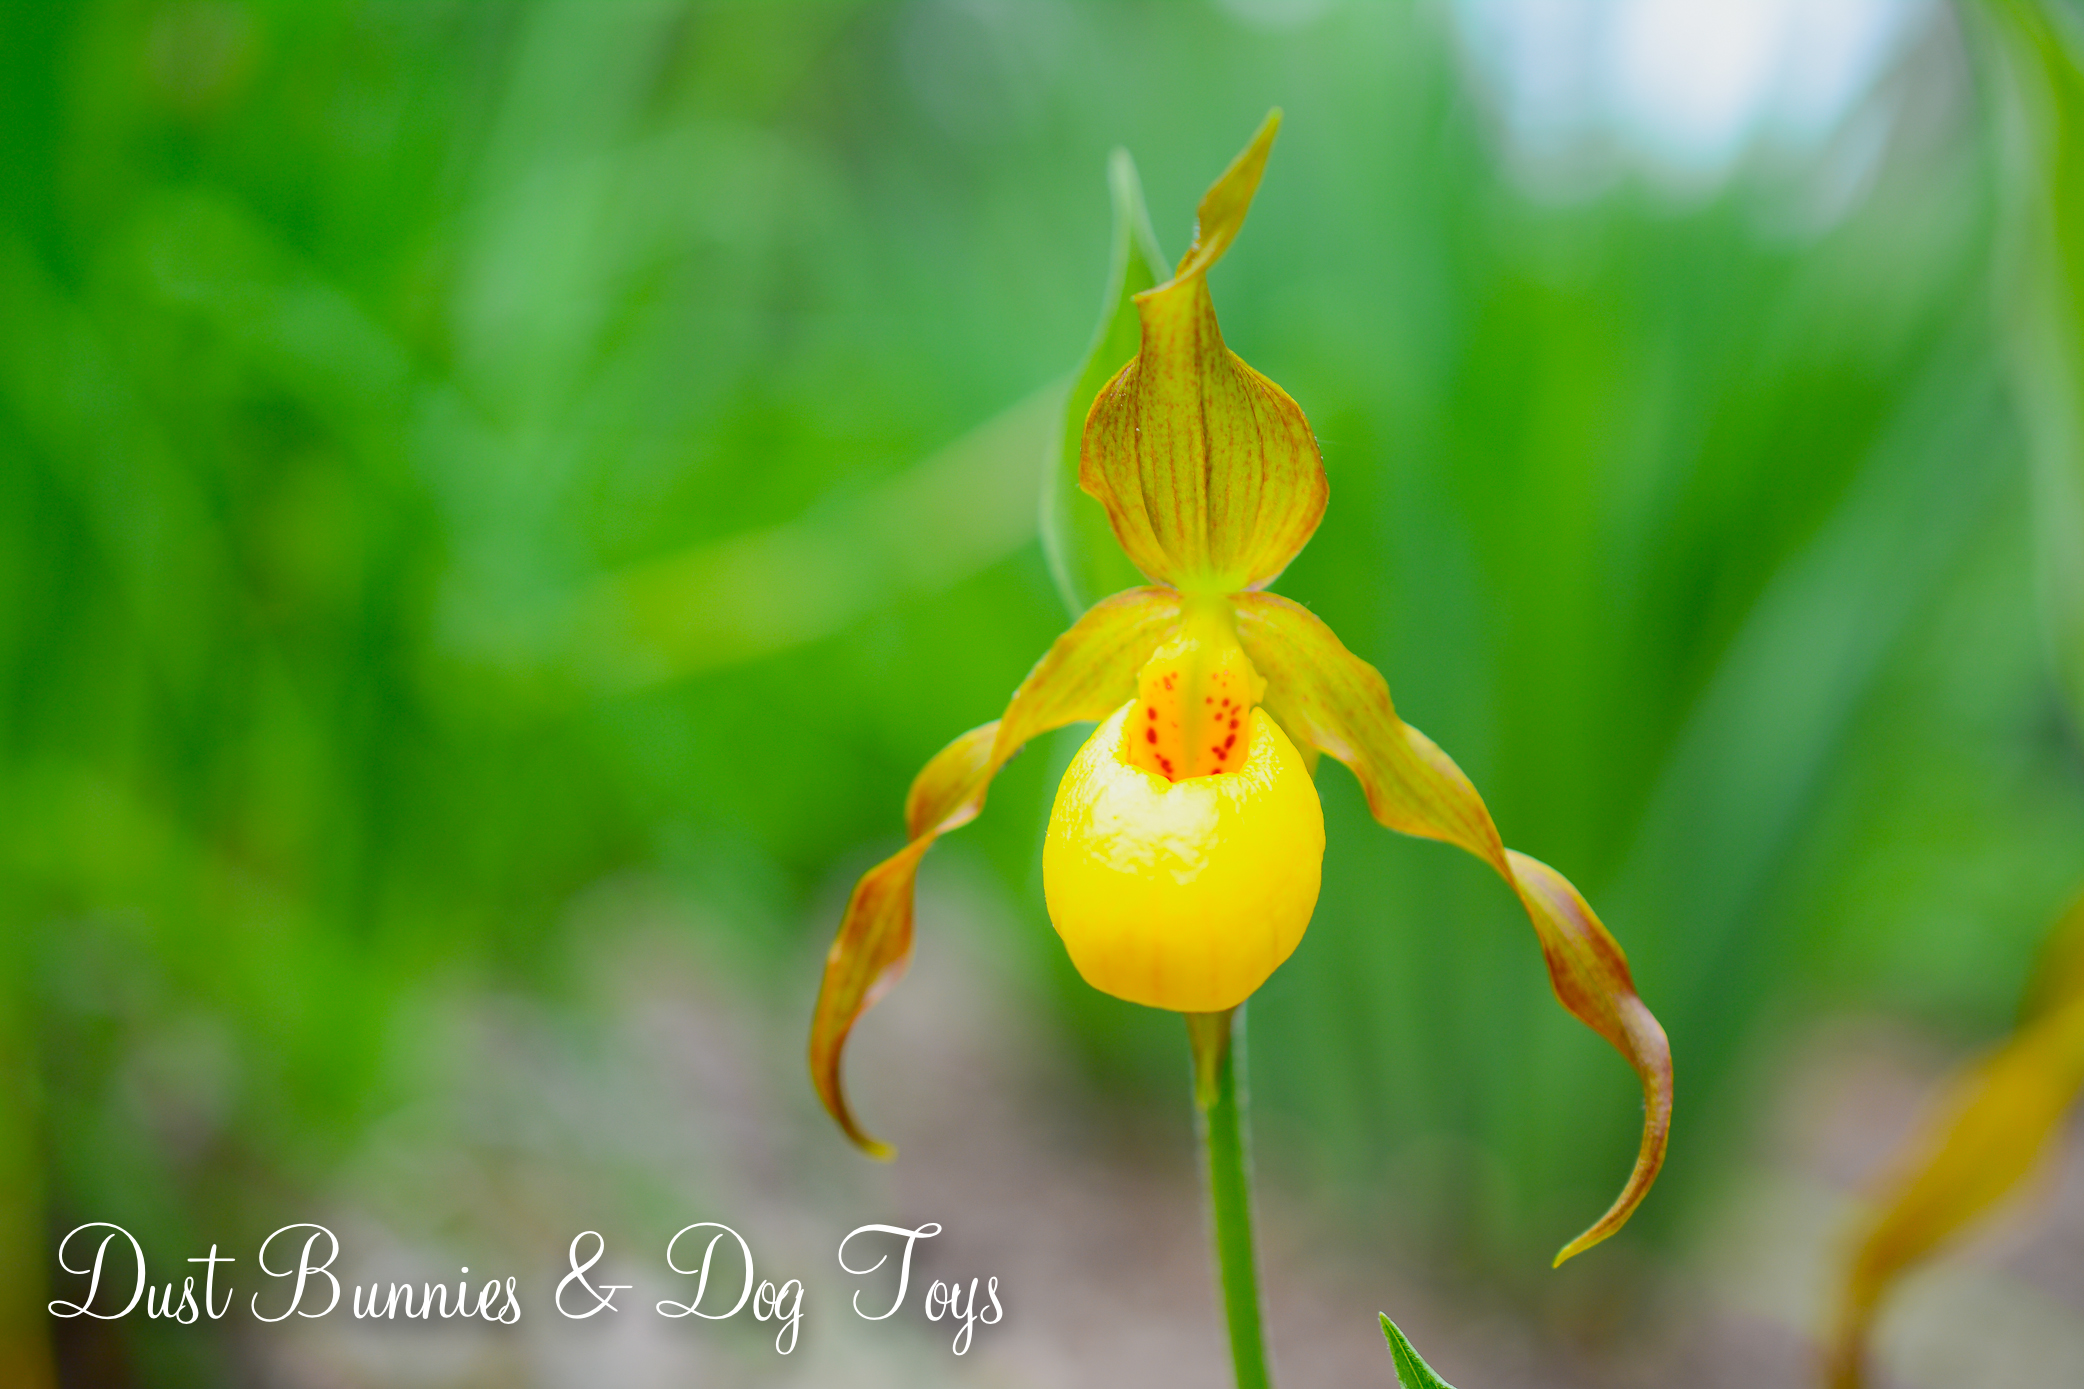 My Lady Slipper Orchids Are Blooming In The Rain Garden